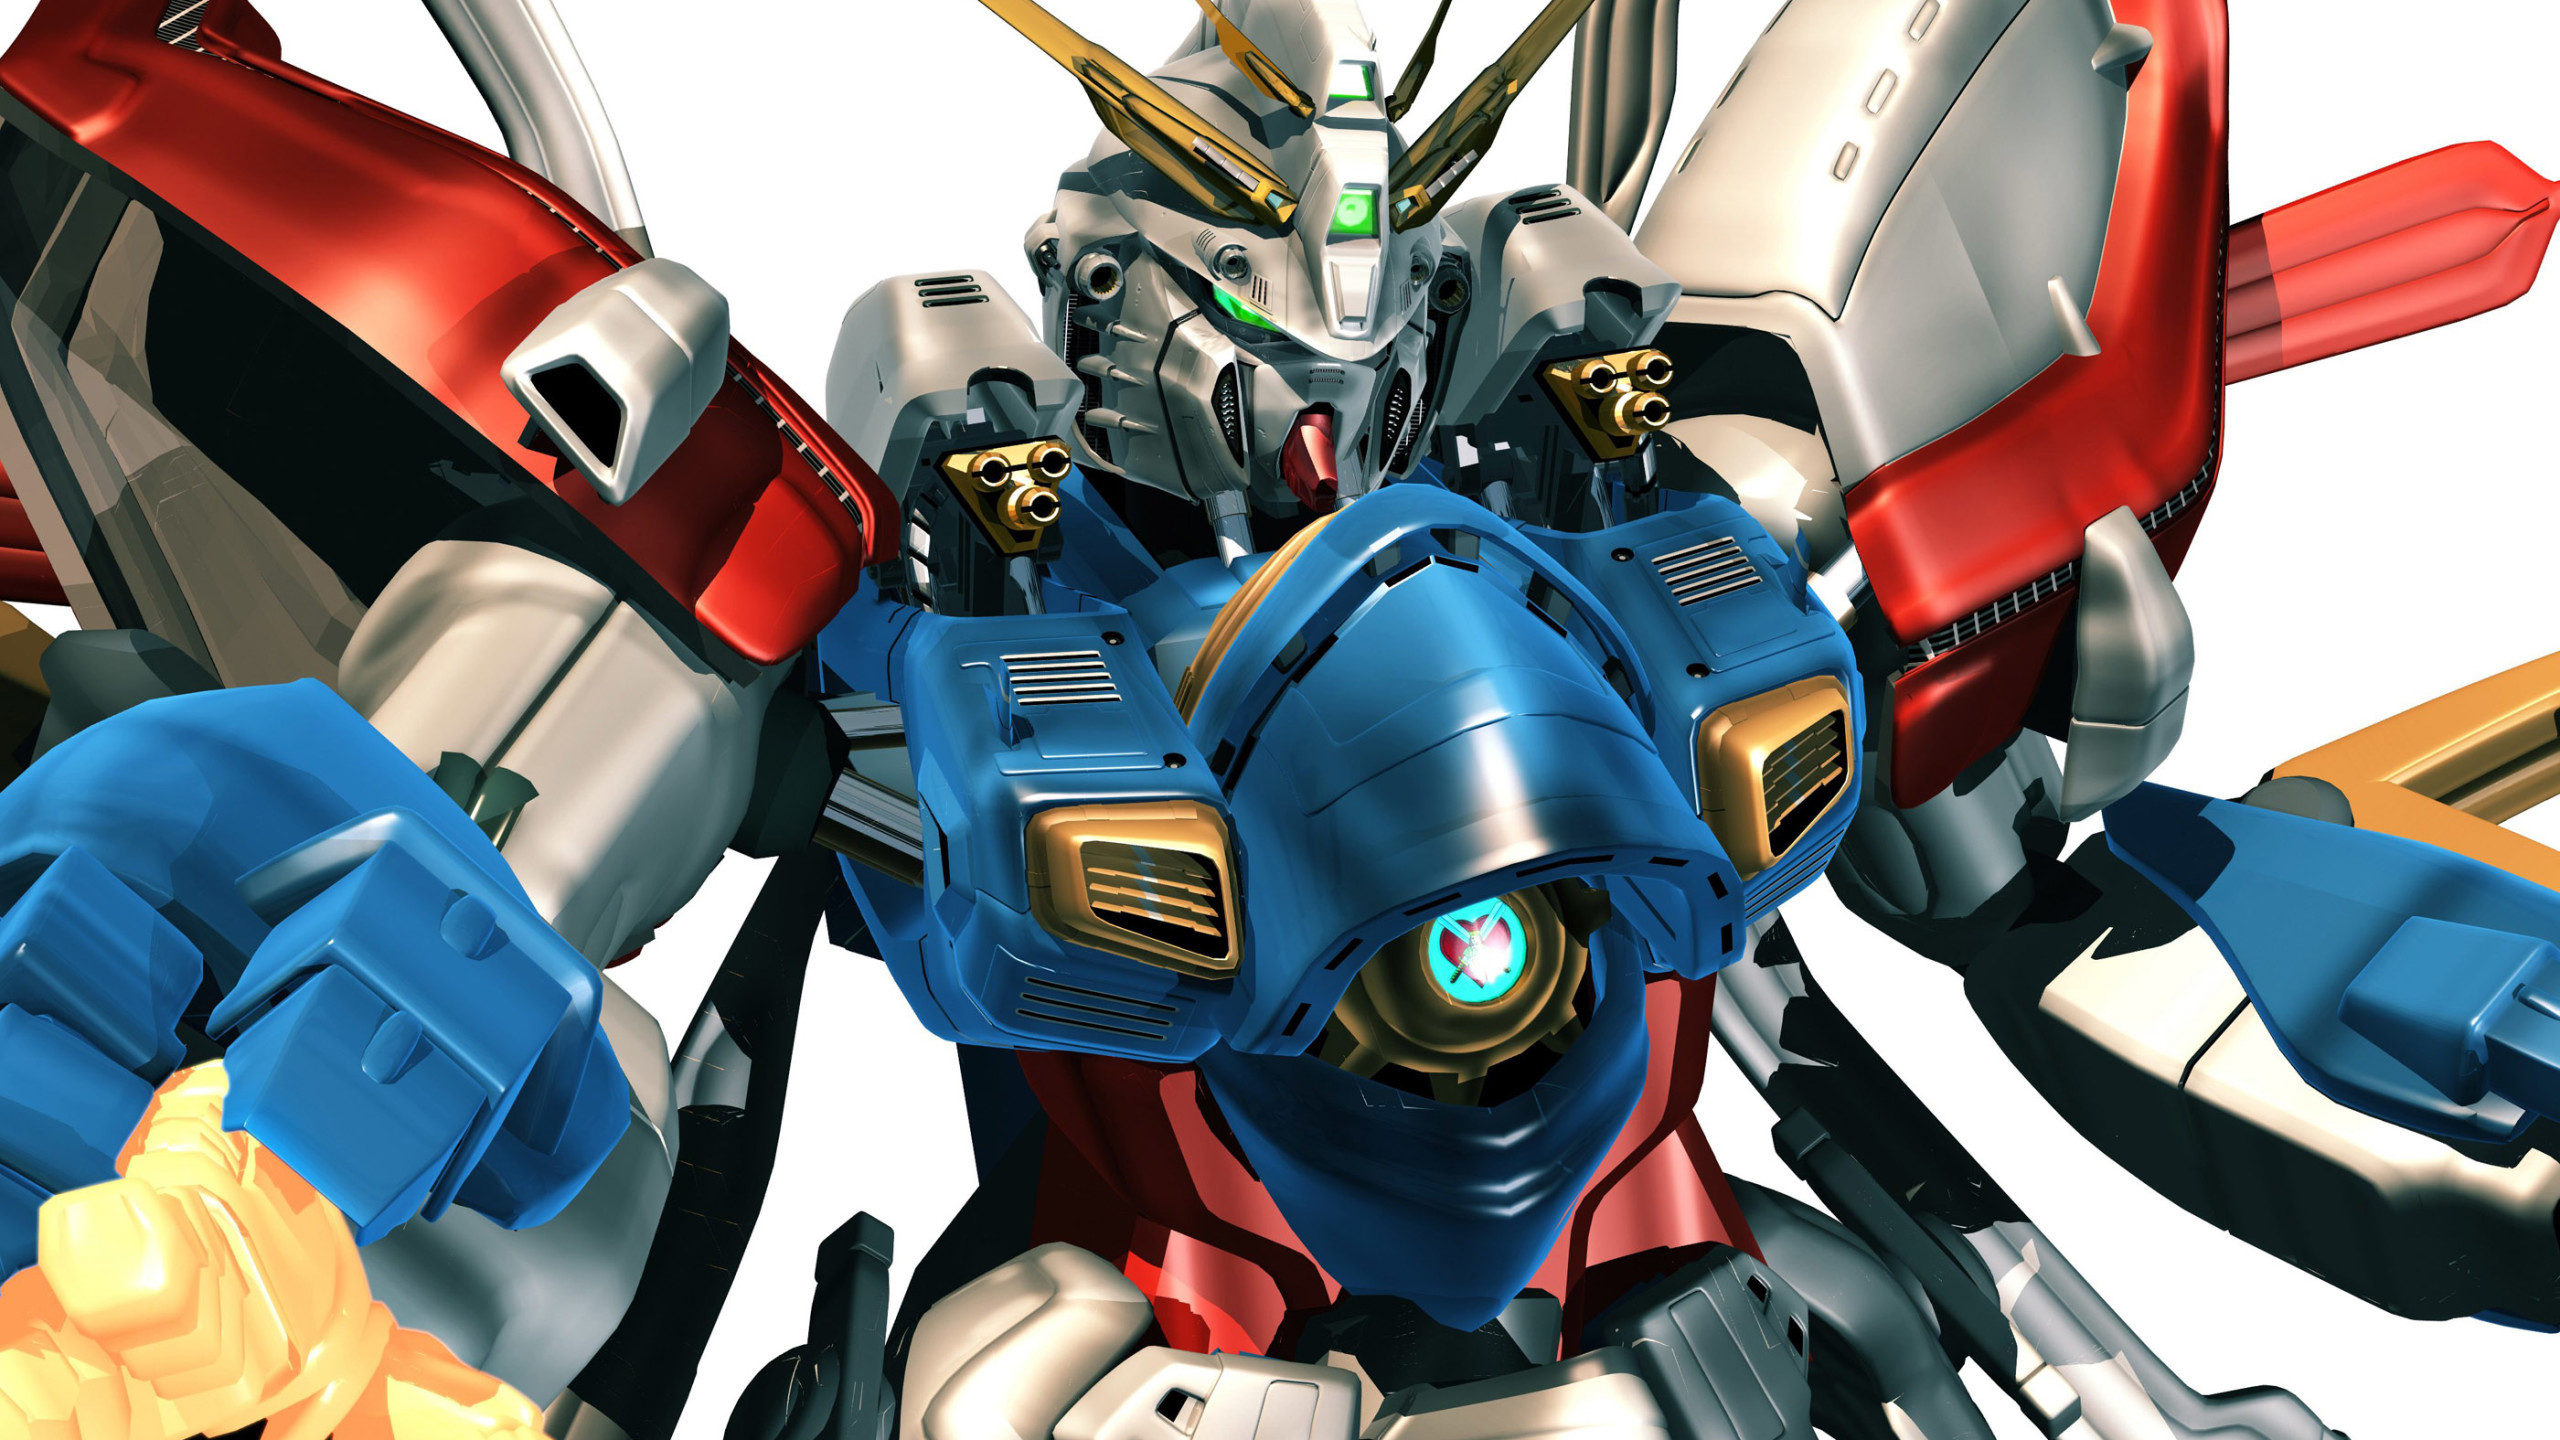 The God Gundam (Burning Gundam in the English dub) is a mobile suit  featured in Mobile Fighter G Gundam. It was the second Mobile Fighter used  by Neo Japan …